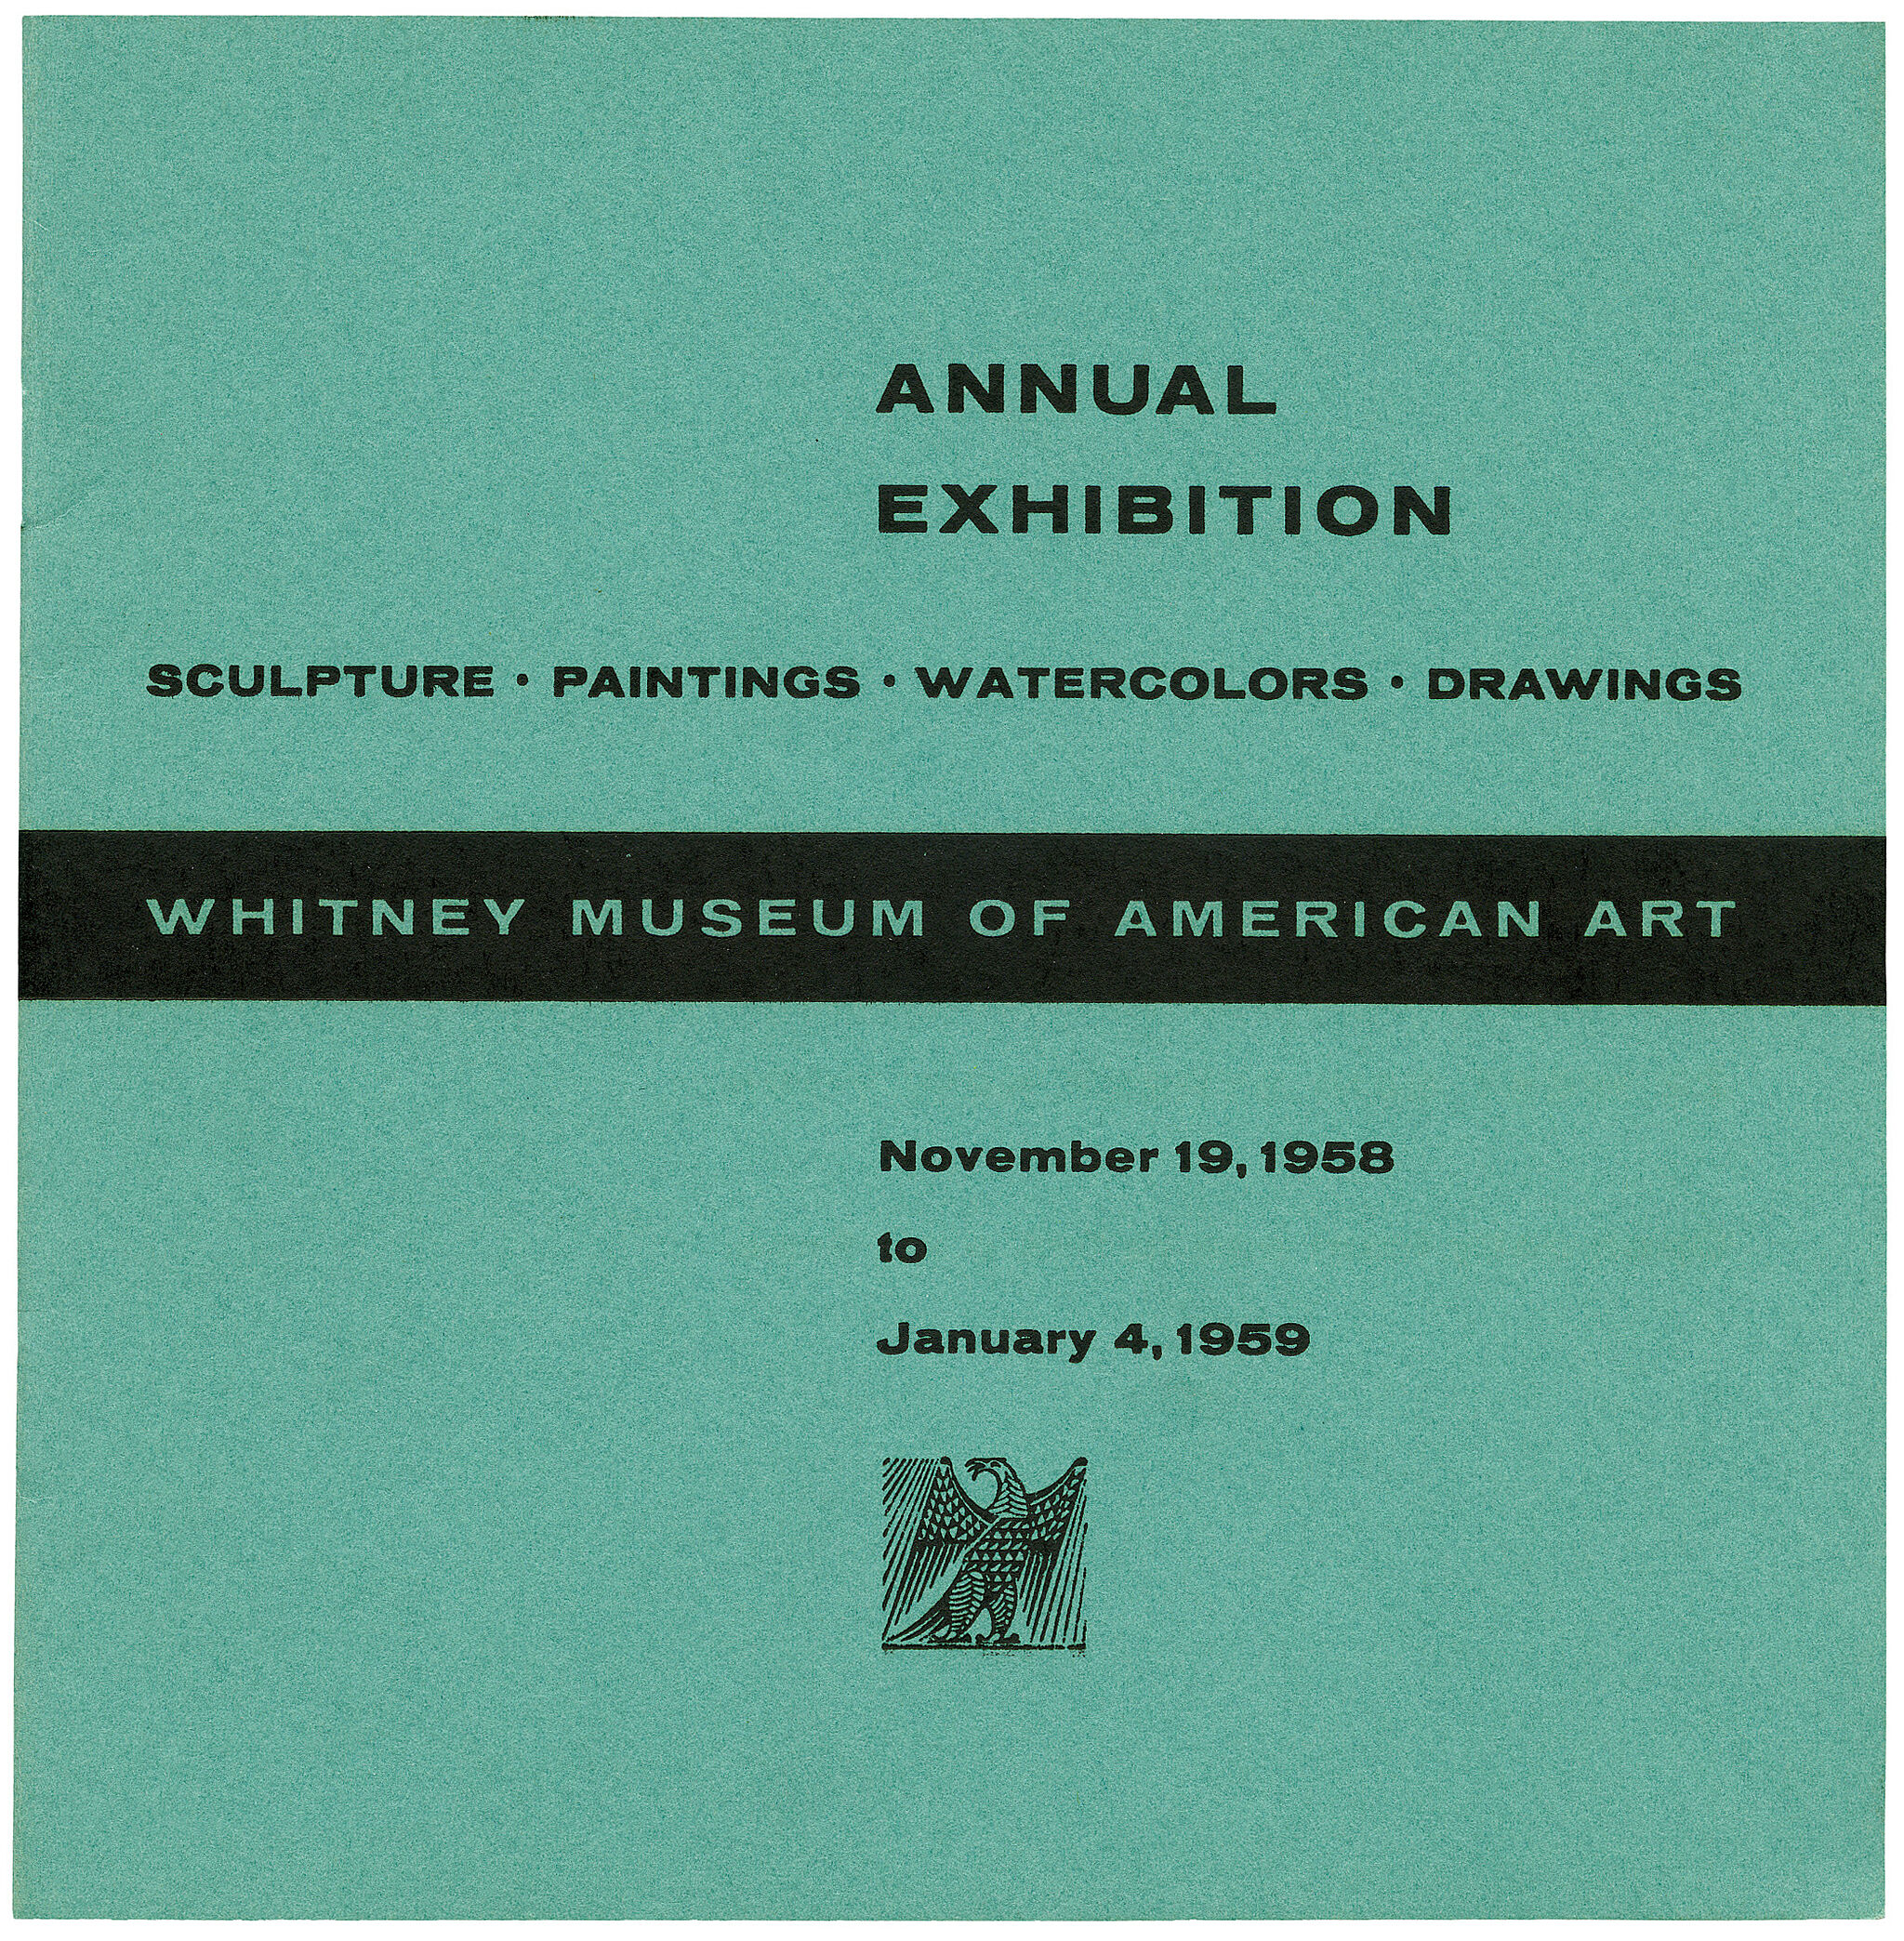 Catalogue cover for 1958 Annual Exhibition: Sculpture, Paintings, Watercolors, Drawings